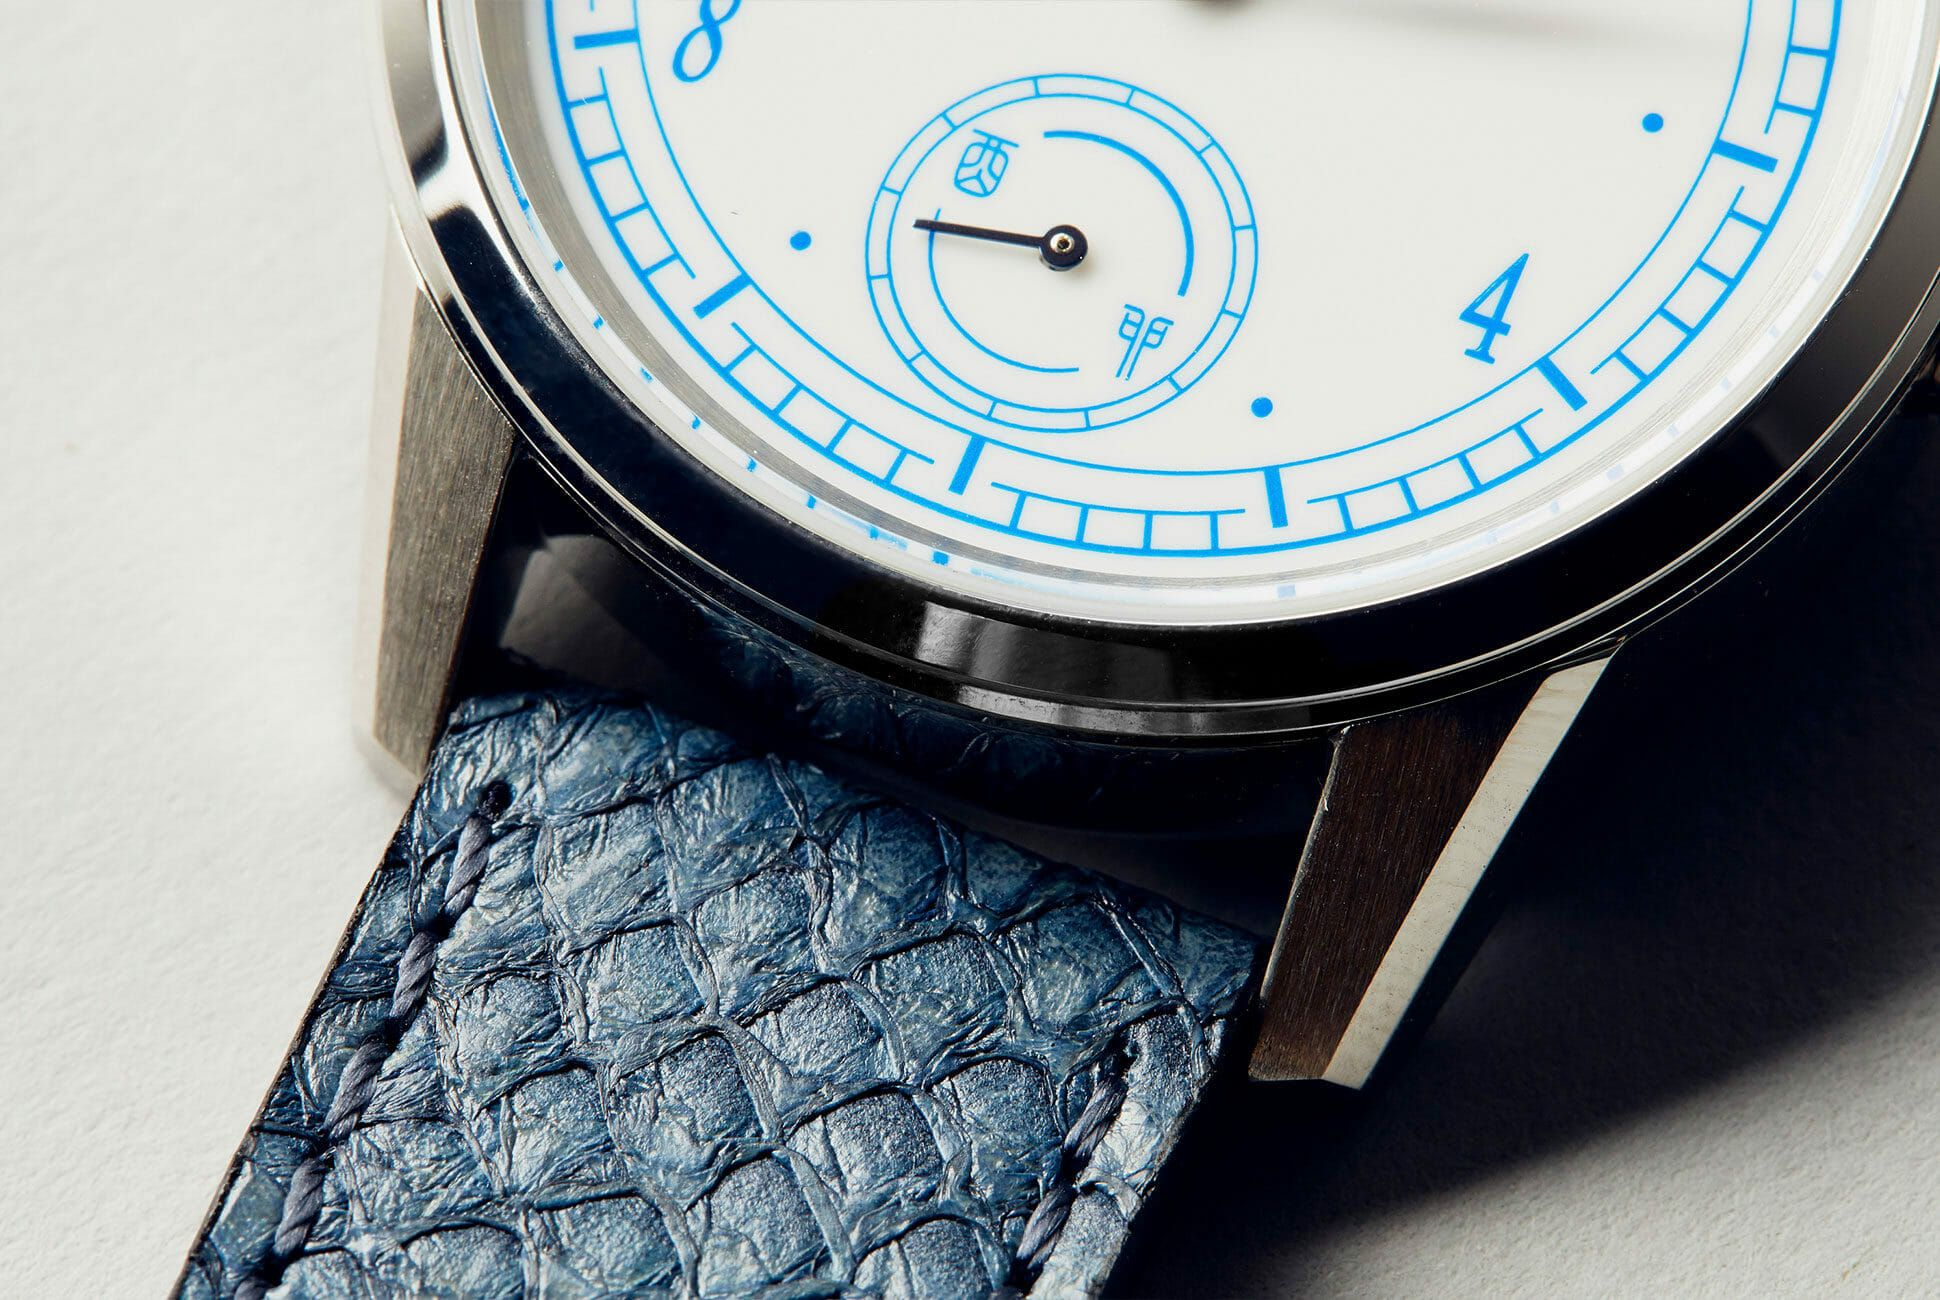 This-Affordable-Automatic-Watch-Has-One-of-the-Most-Stunning-Dials-Weve-Seen-Gear-Patrol-slide-3